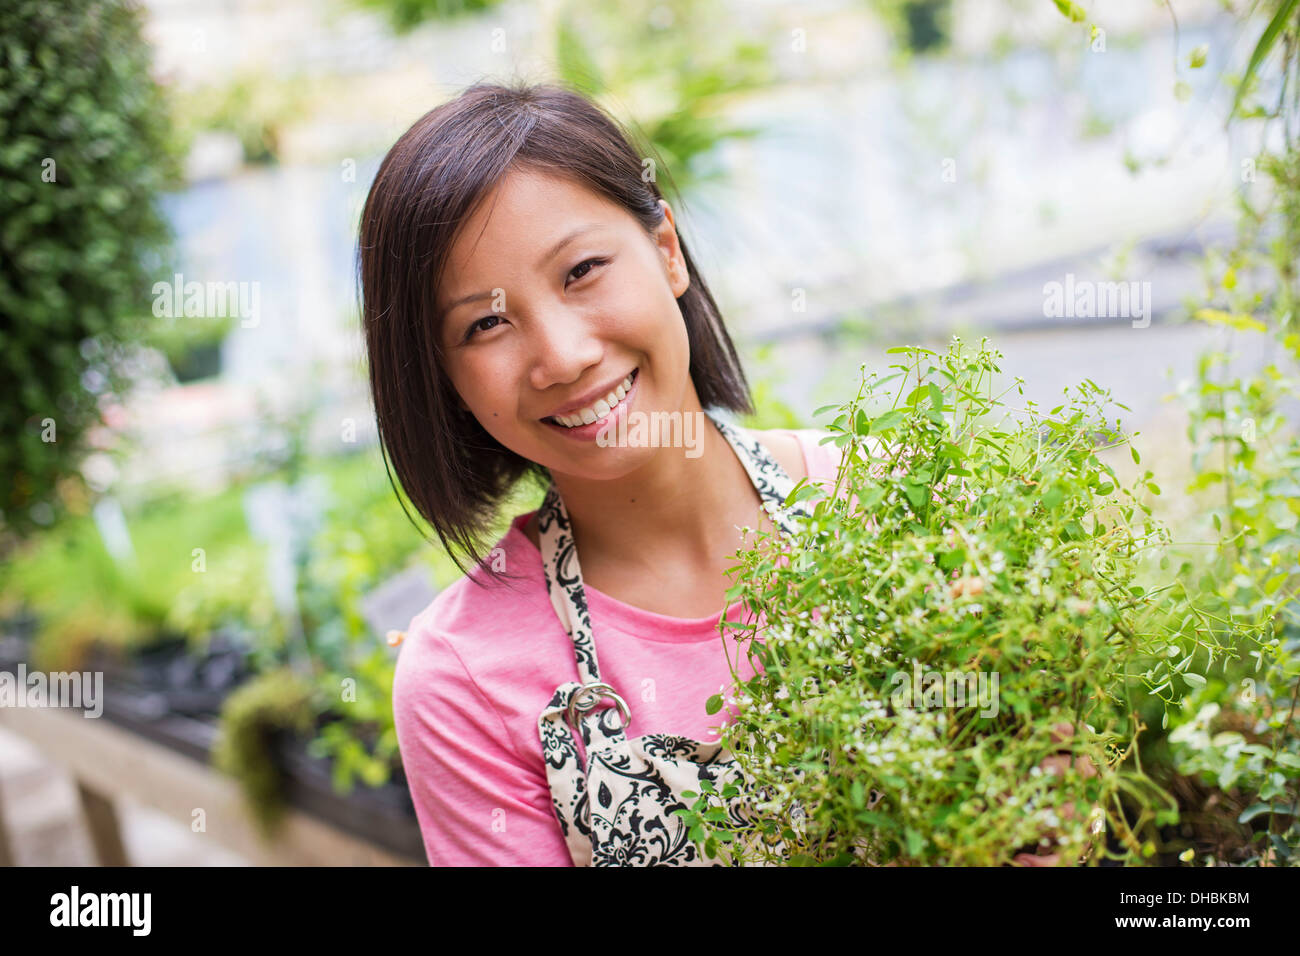 Working on an organic farm. A woman tending young plants in a glass house. - Stock Image